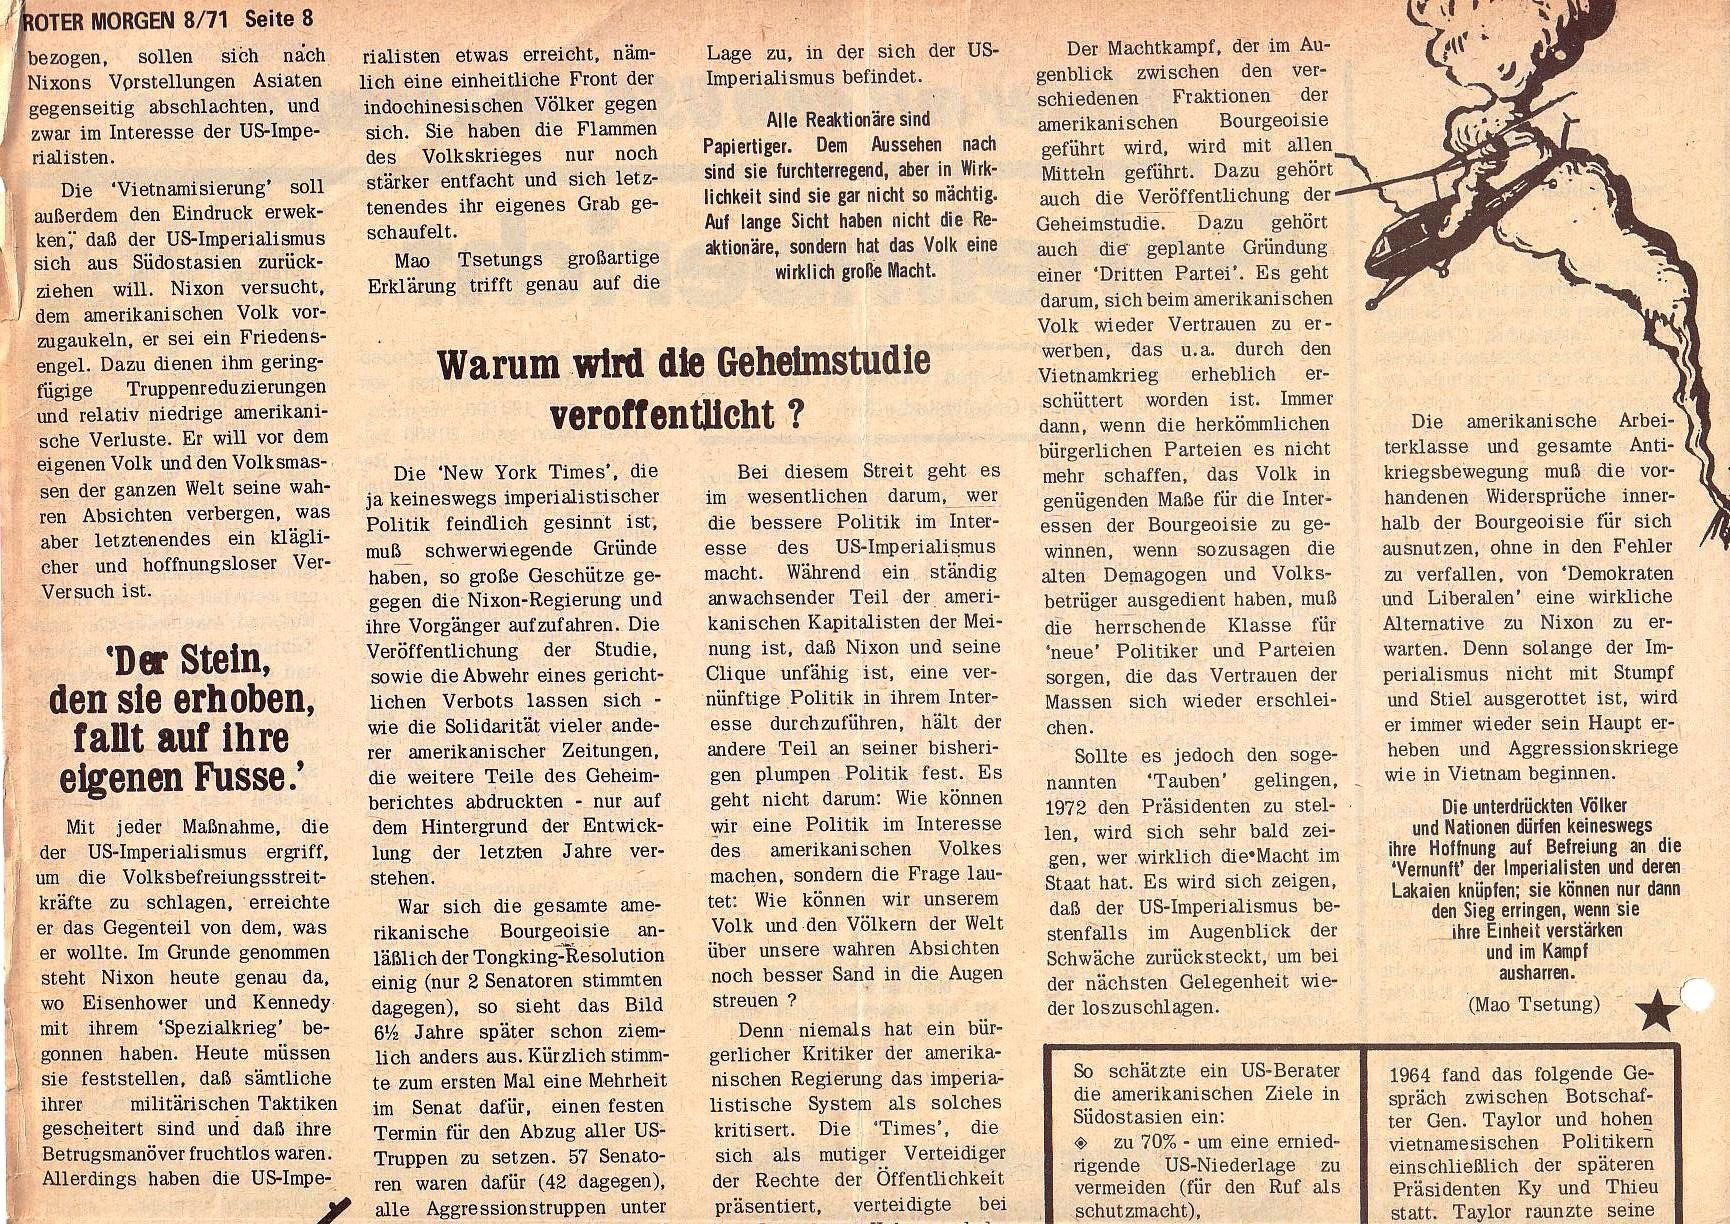 Roter Morgen, 5. Jg., August 1971, Nr. 8, Seite 8a